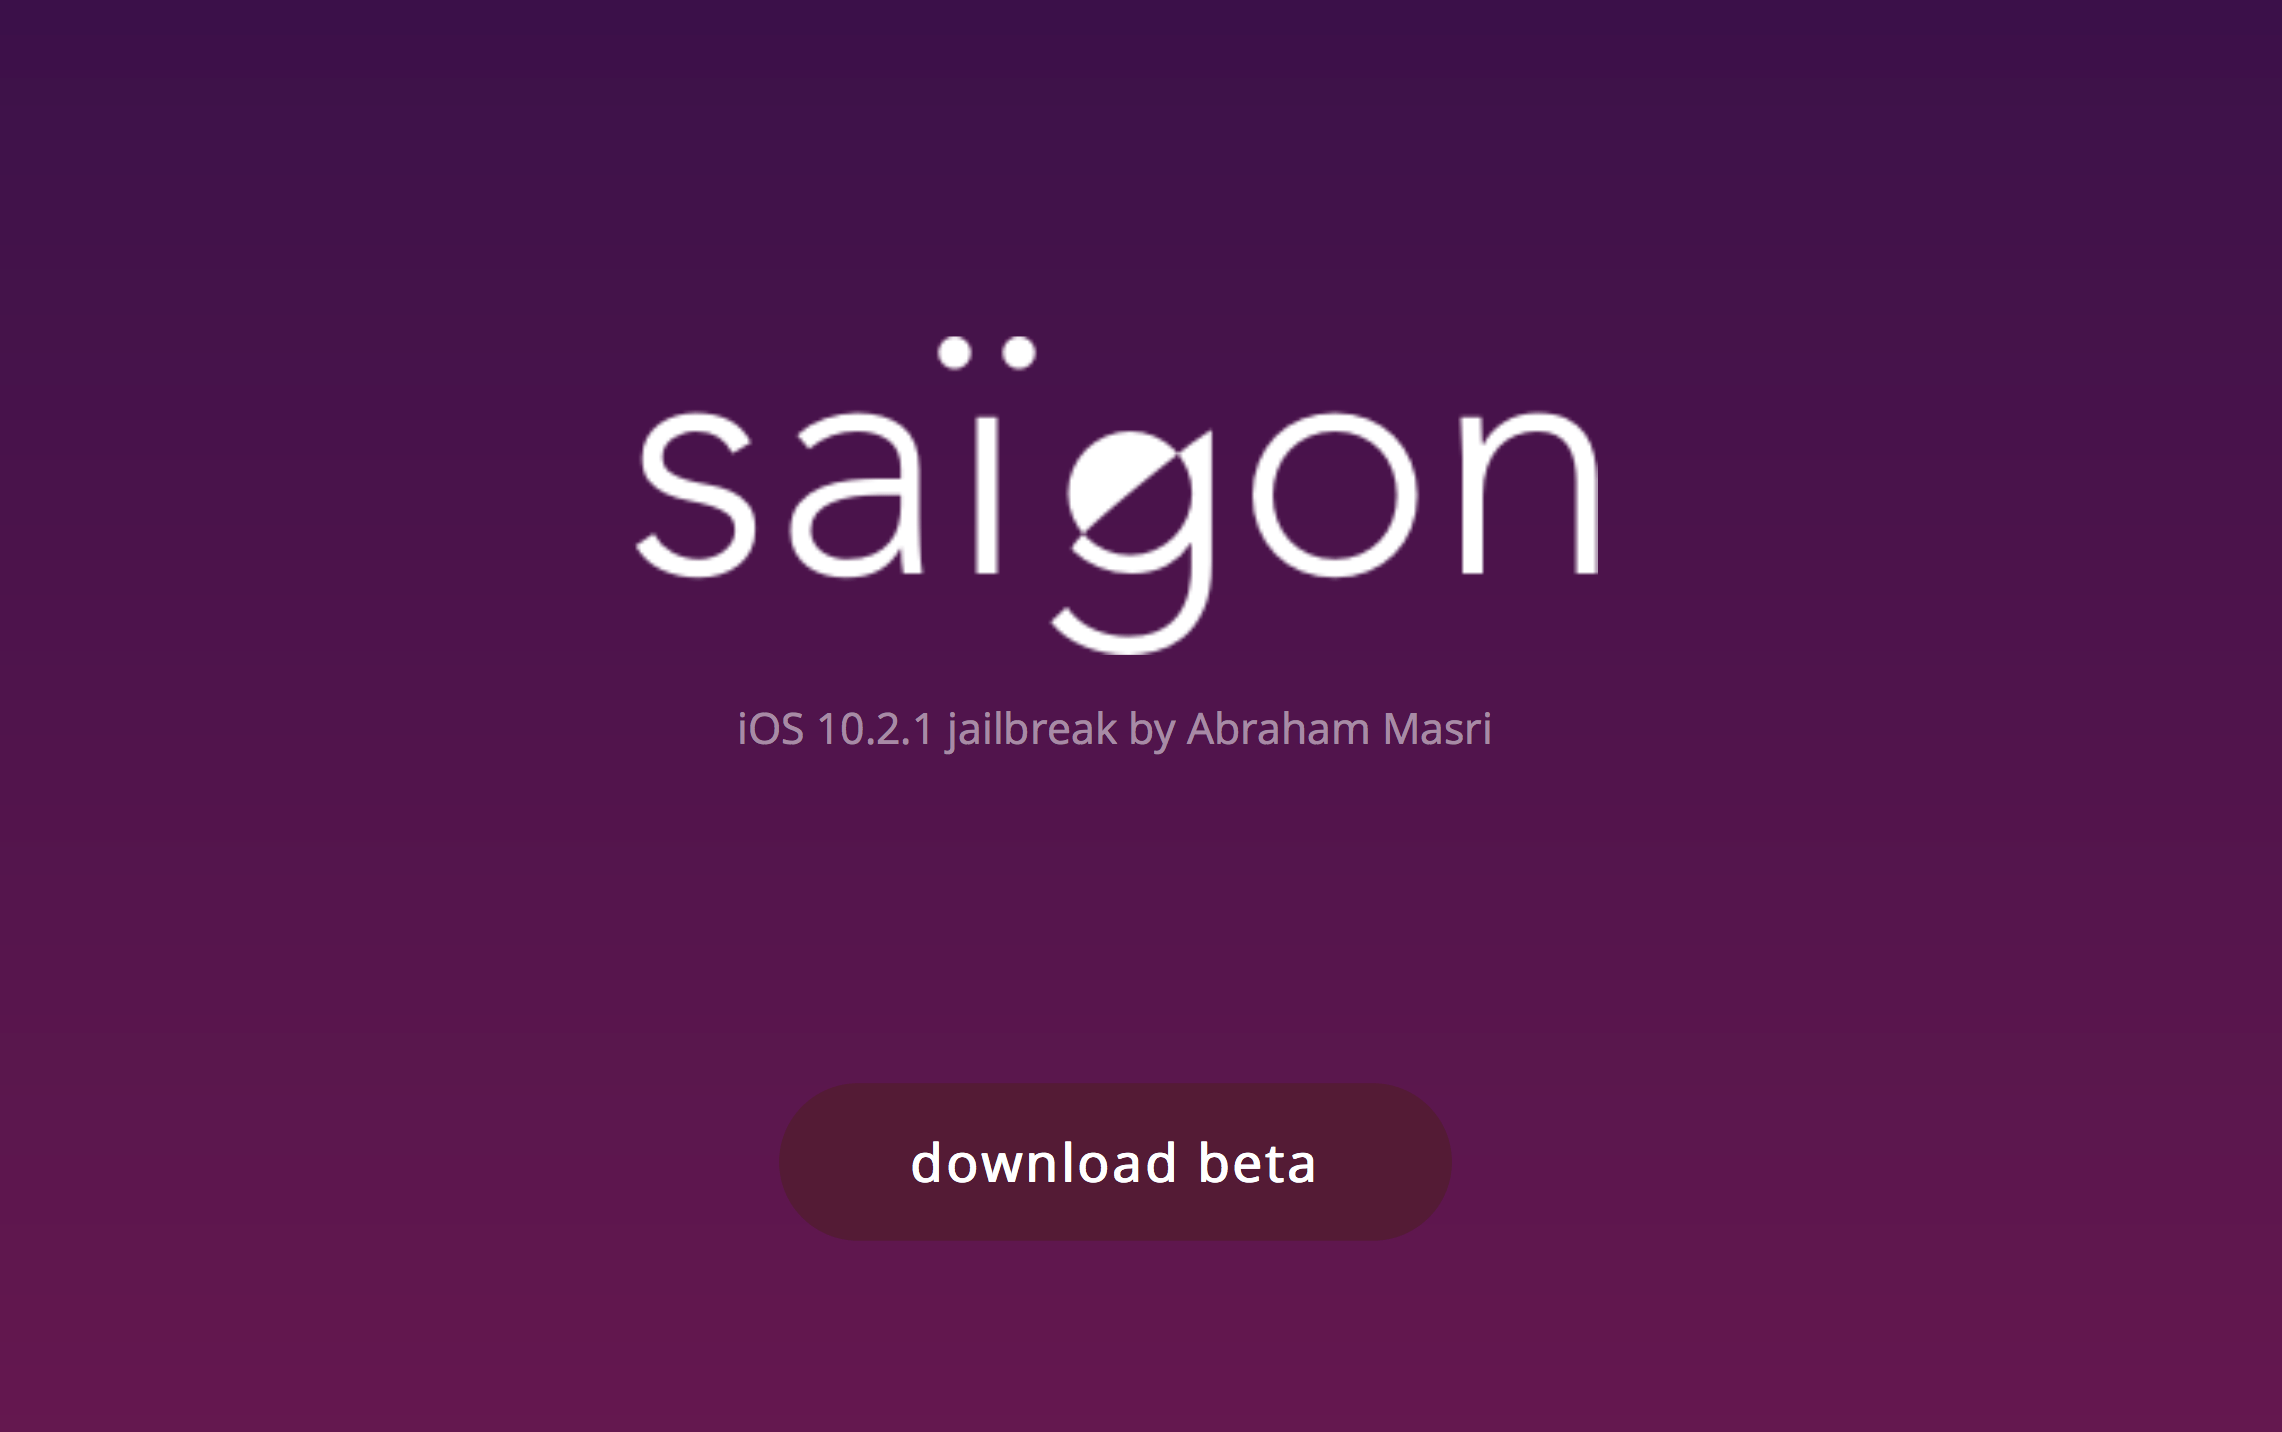 Saïgon jailbreak released for some iOS 10.2.1 64-bit devices, iOS 10.3.1 a possibility